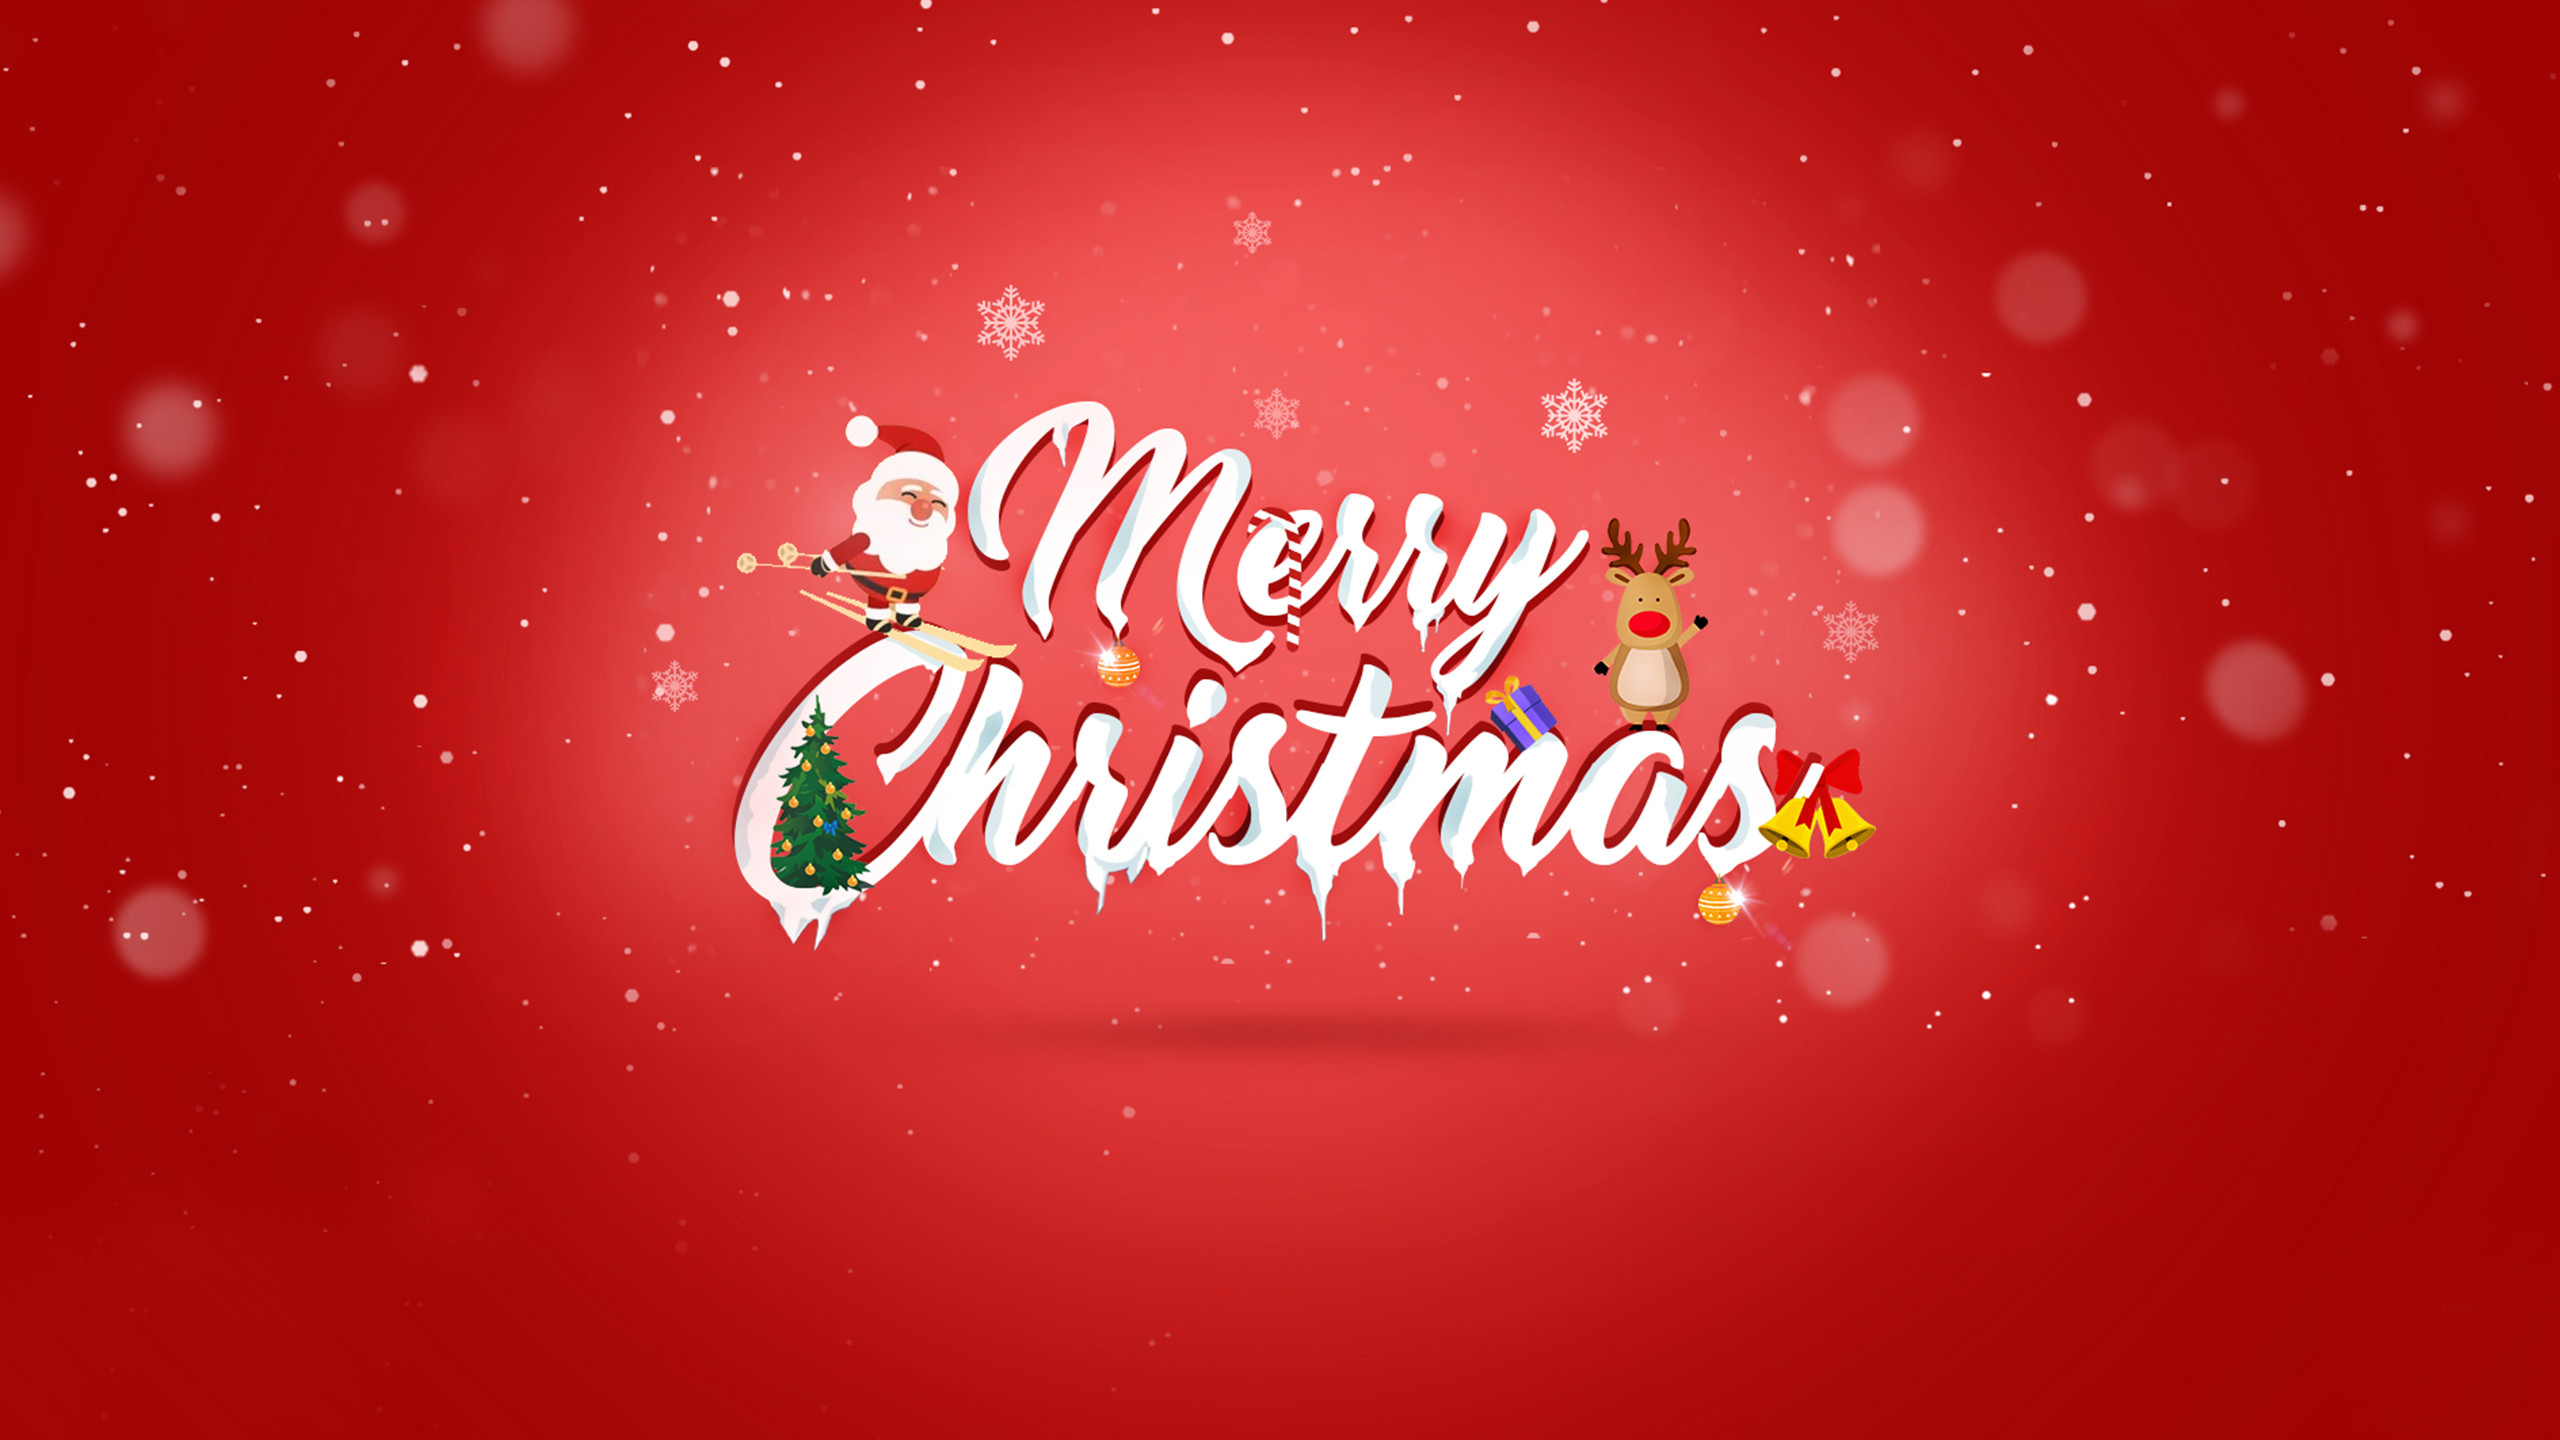 Merry Christmas Wallpapers 2018 80 Background Pictures